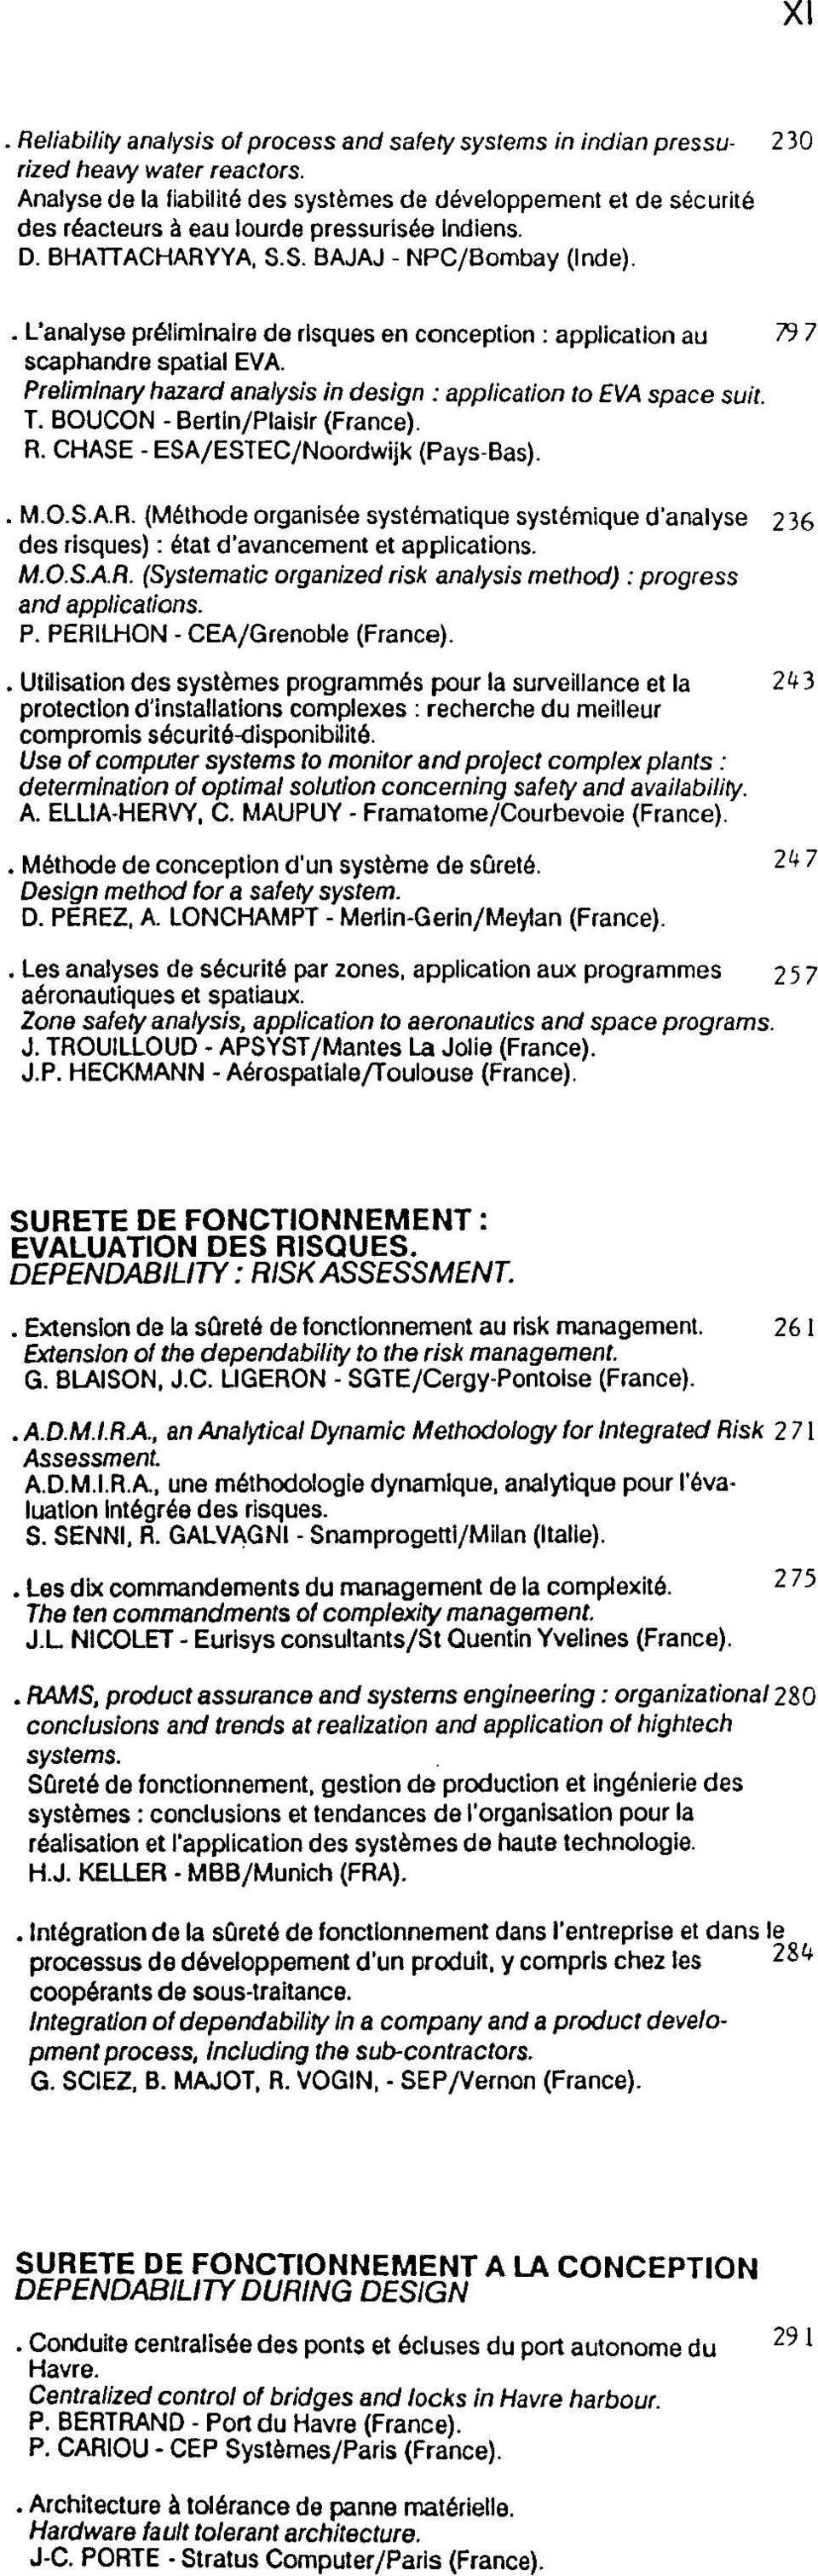 . L'analyse prelimlnaire de rlsques en conception : application au 79 7 scaphandre spatial EVA. Preliminary hazard analysis in design : application to EVA space suit T.